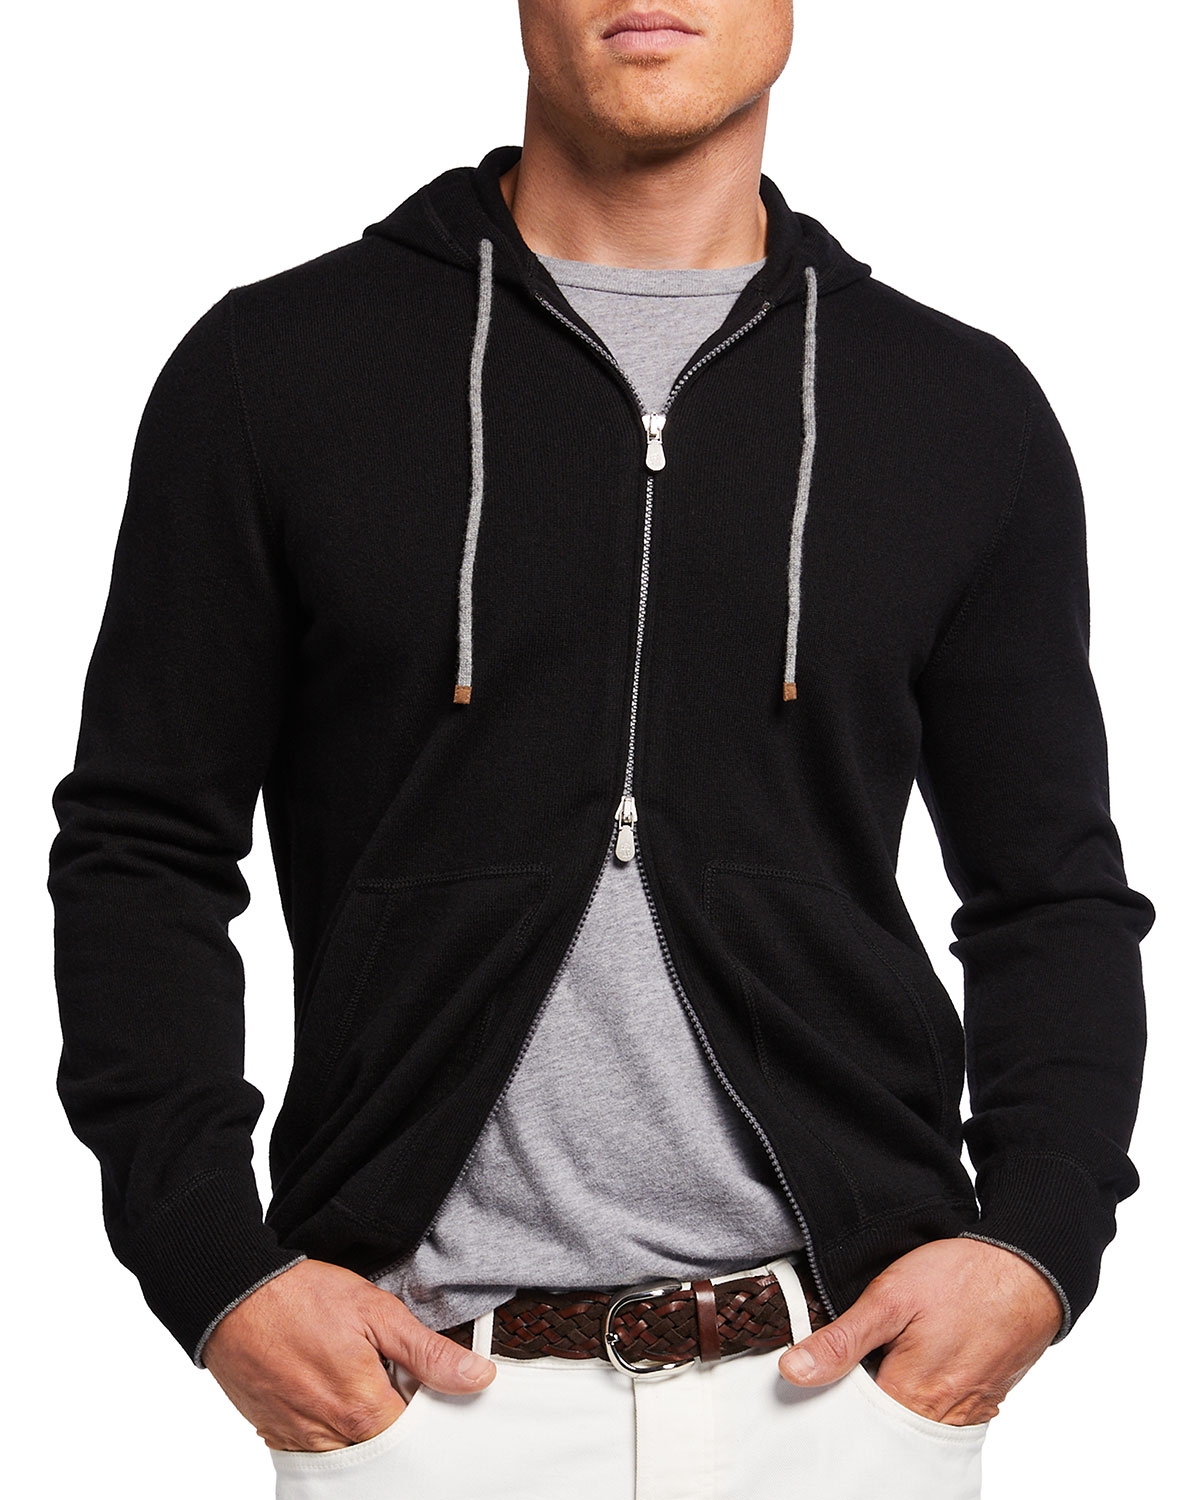 Men's Two-Tone Full Zip Cashmere Hoodie Sweater